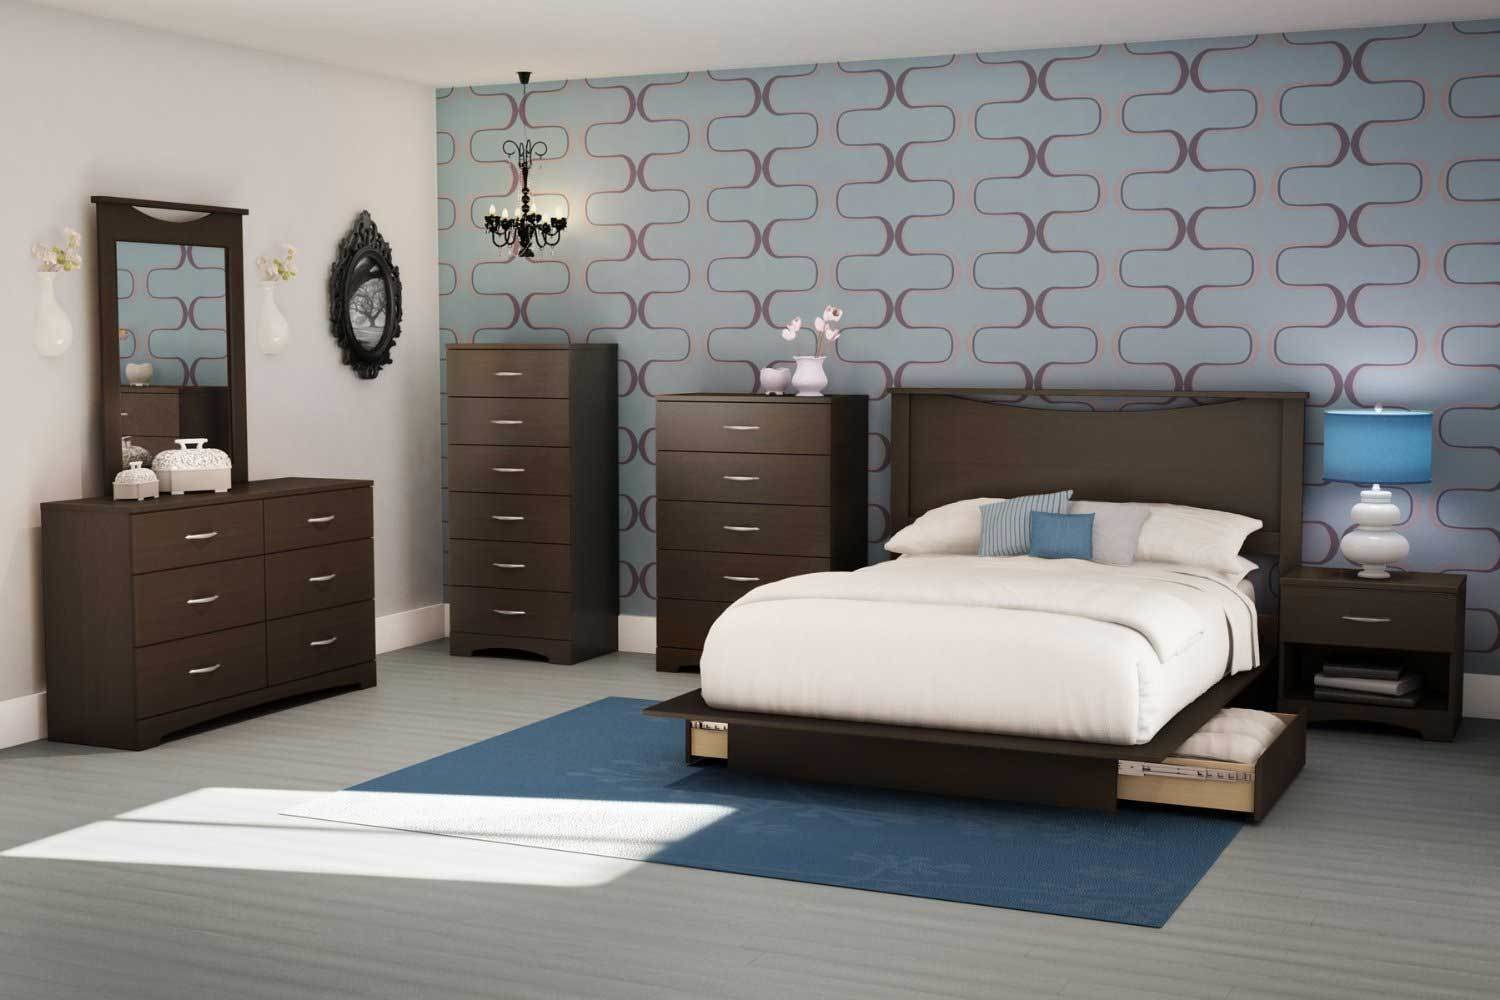 Best South Shore Contemporary Bedroom Furniture Set With Wooden With Pictures